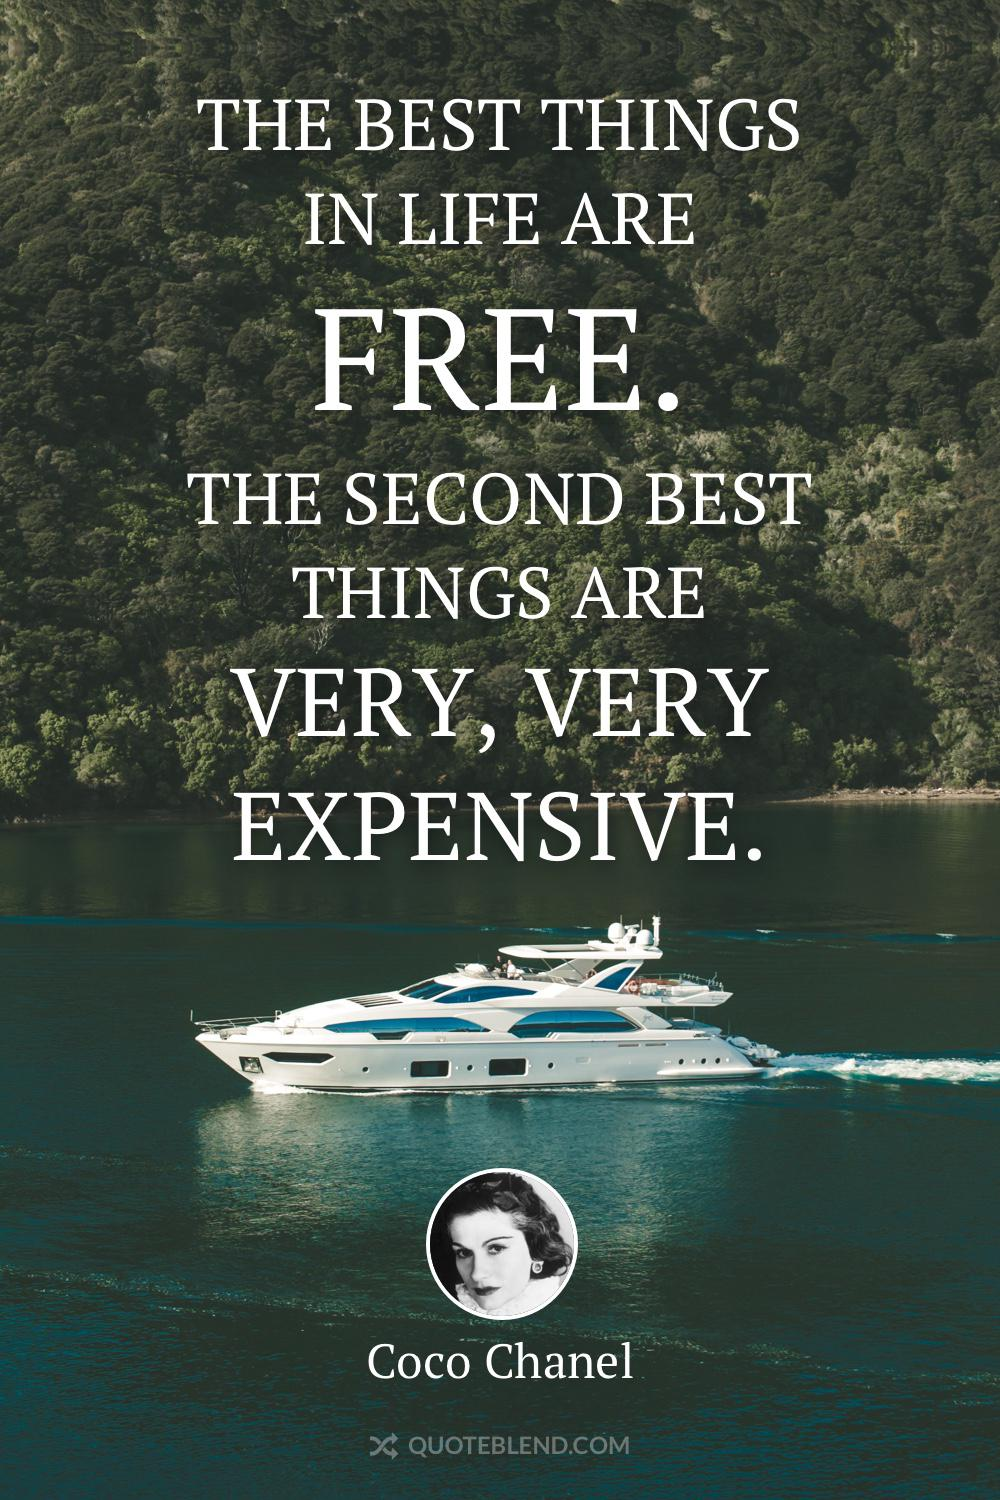 """The best things in life are free. The second best things are very, very expensive."" -Coco Chanel [1000×1500]"